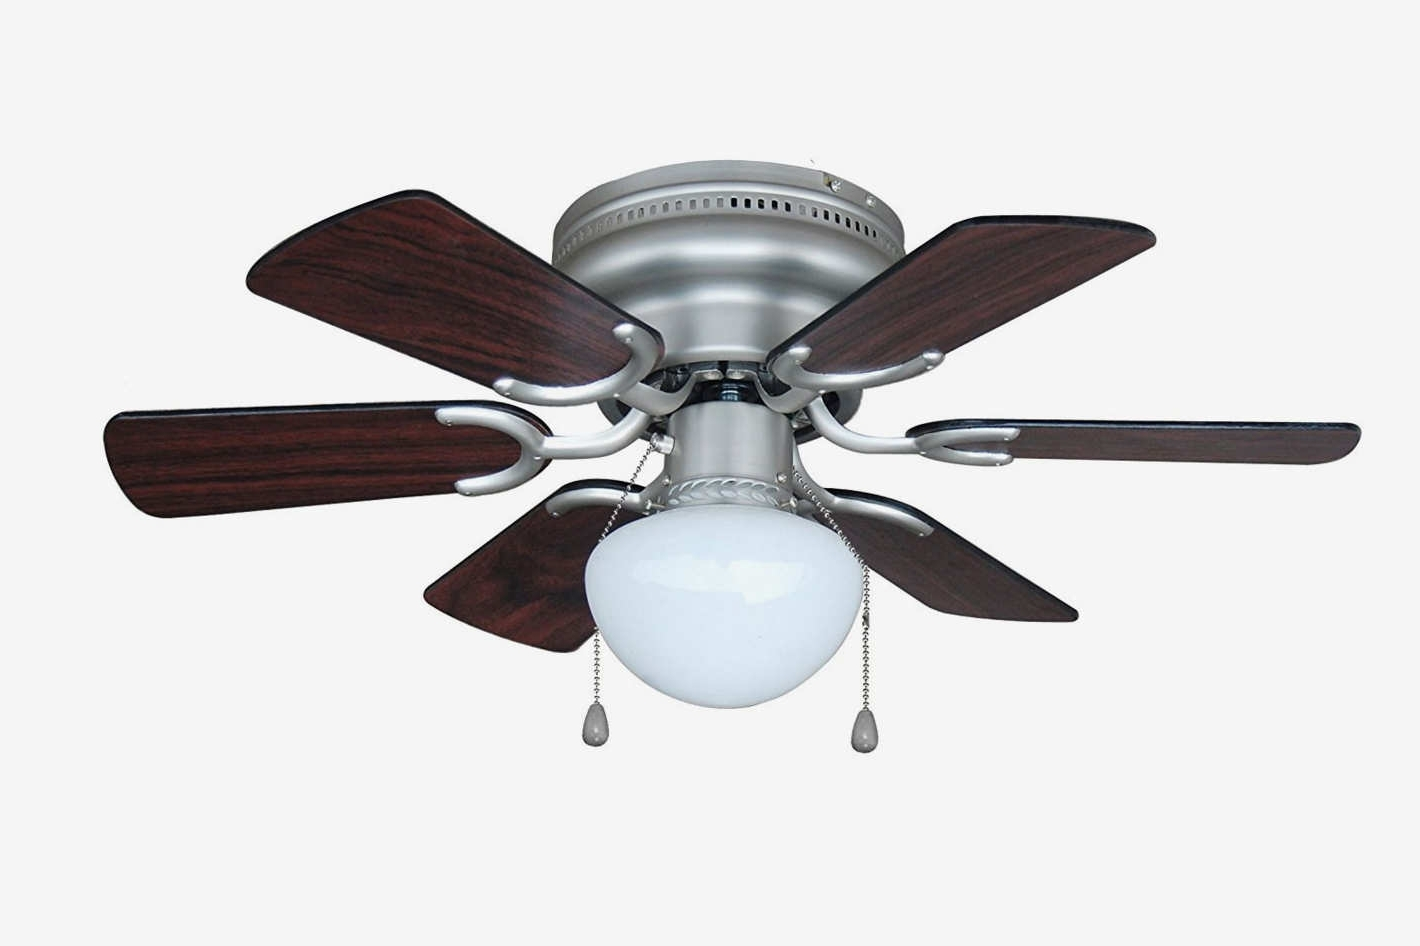 2019 The 9 Best Ceiling Fans On Amazon 2018 Pertaining To Outdoor Ceiling Fans Under $ (View 2 of 20)